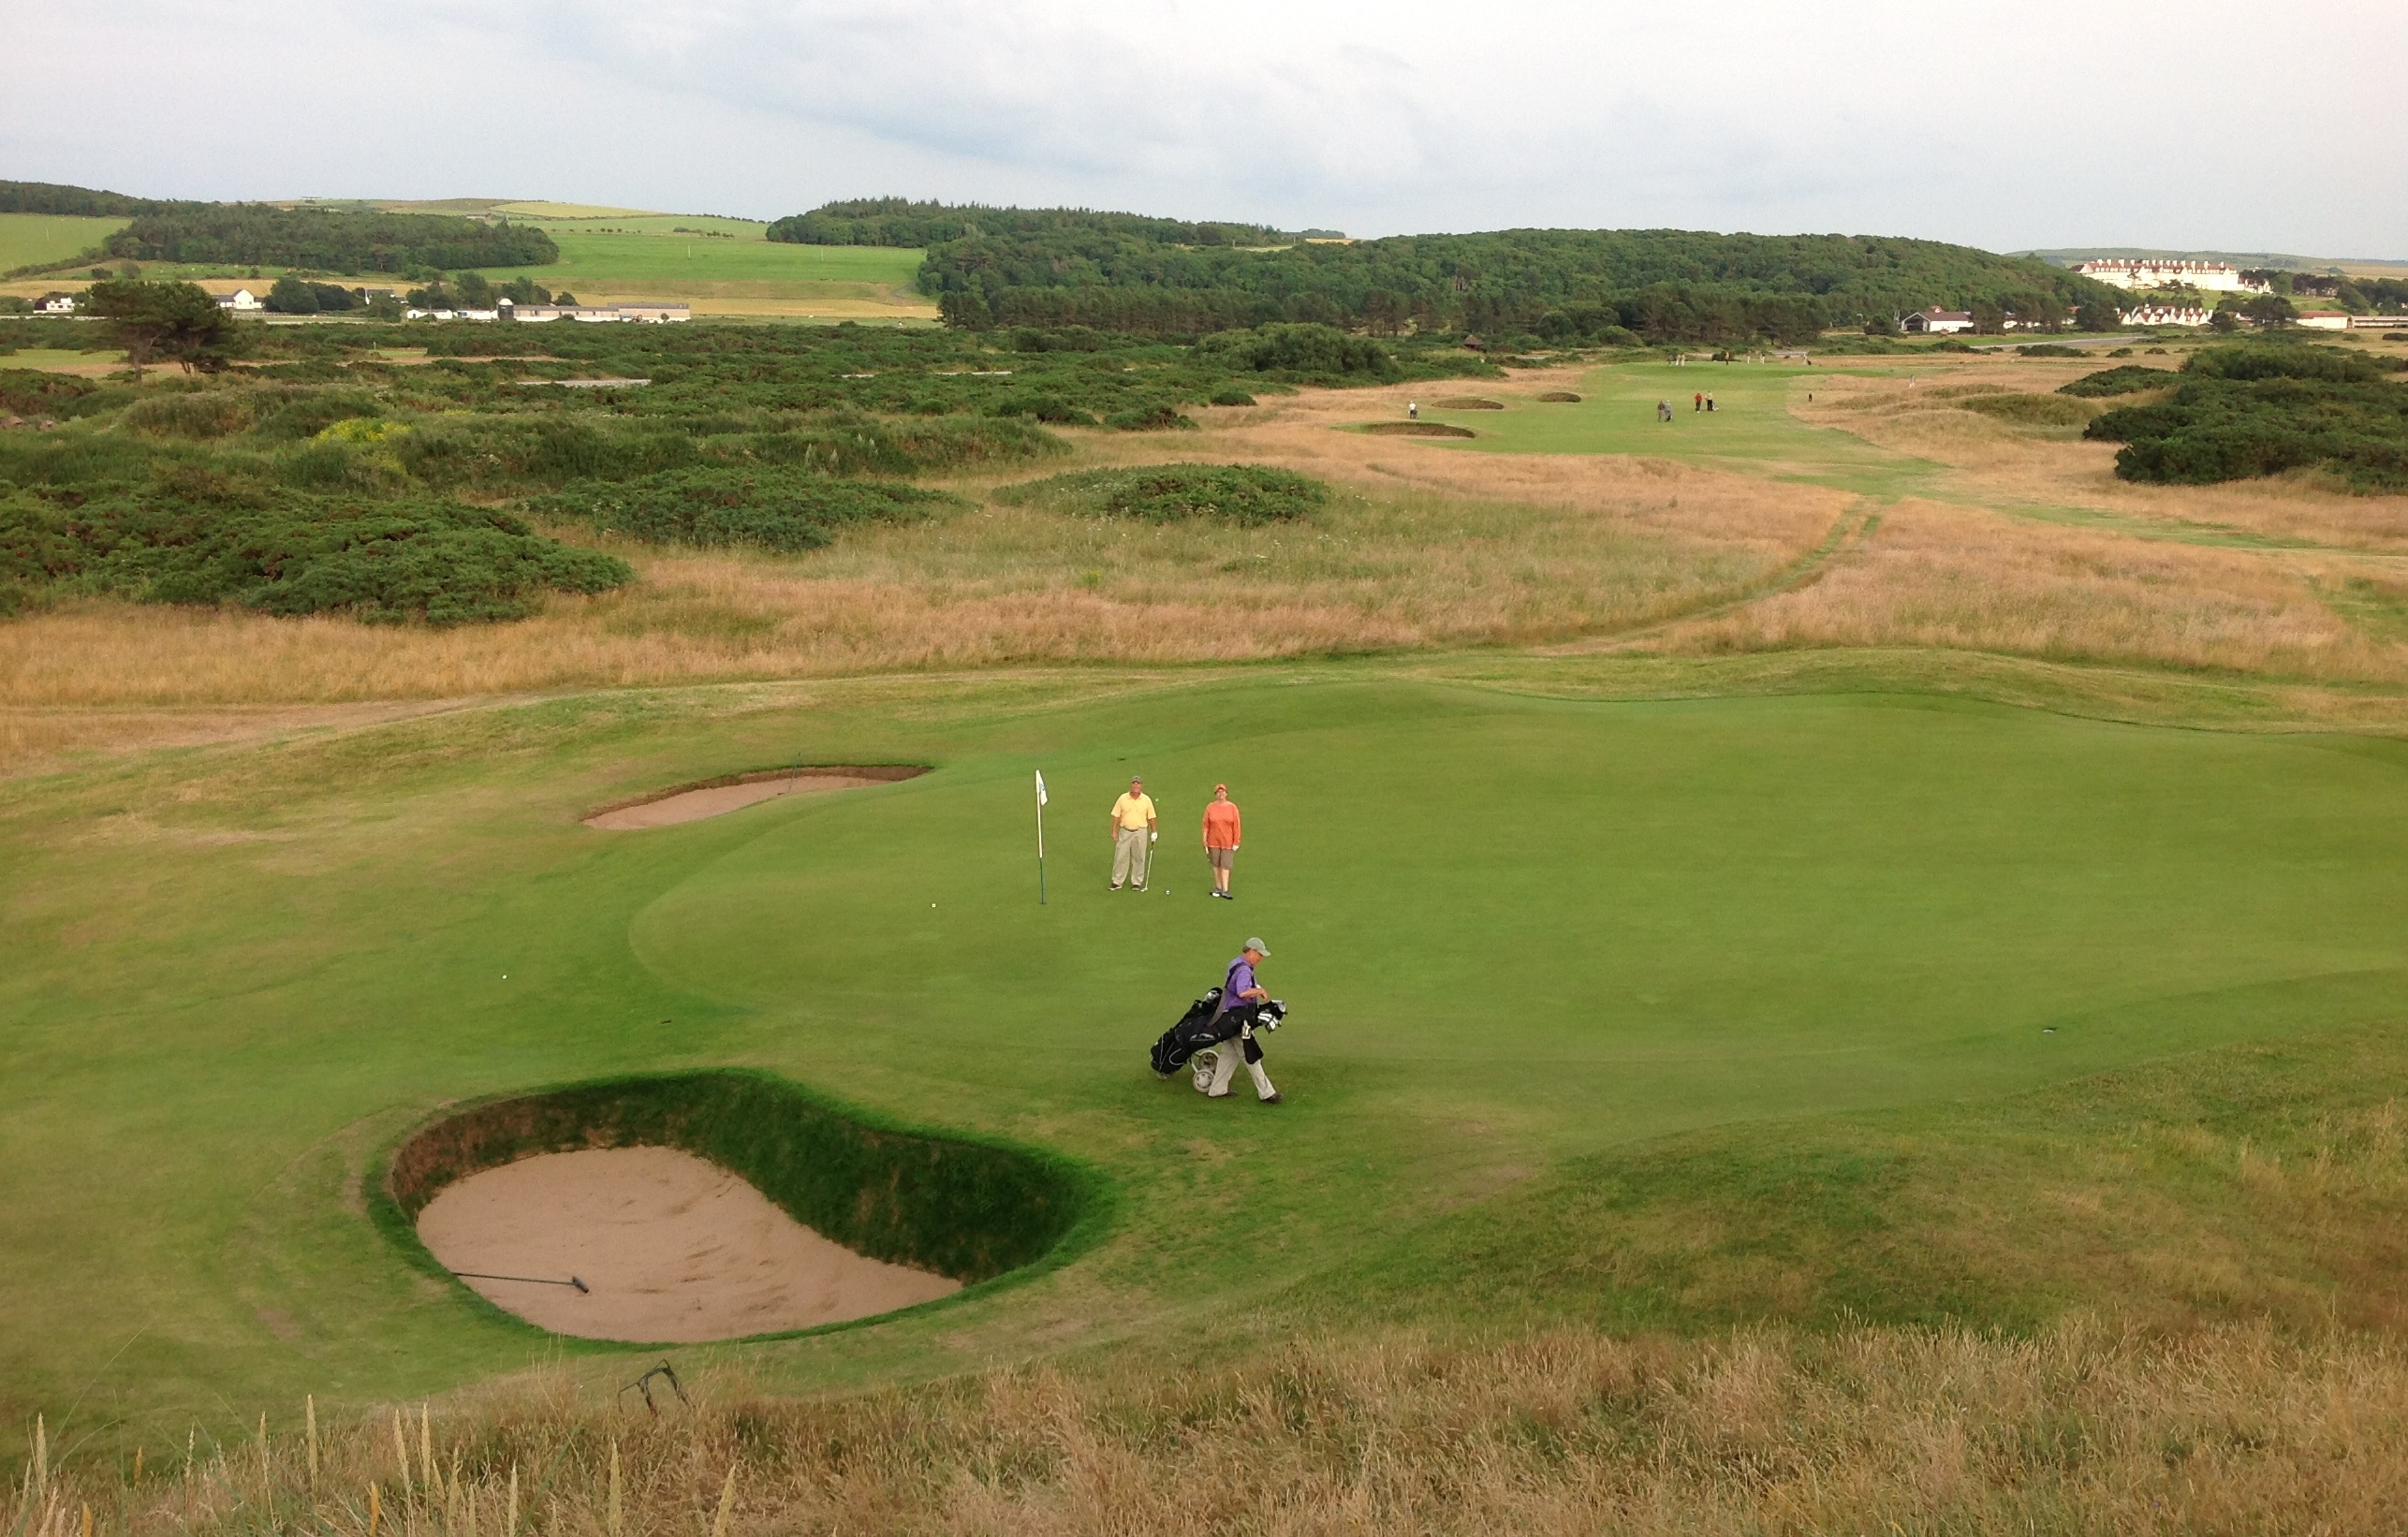 At Turnberry, the golf course wends its way through the terrain.